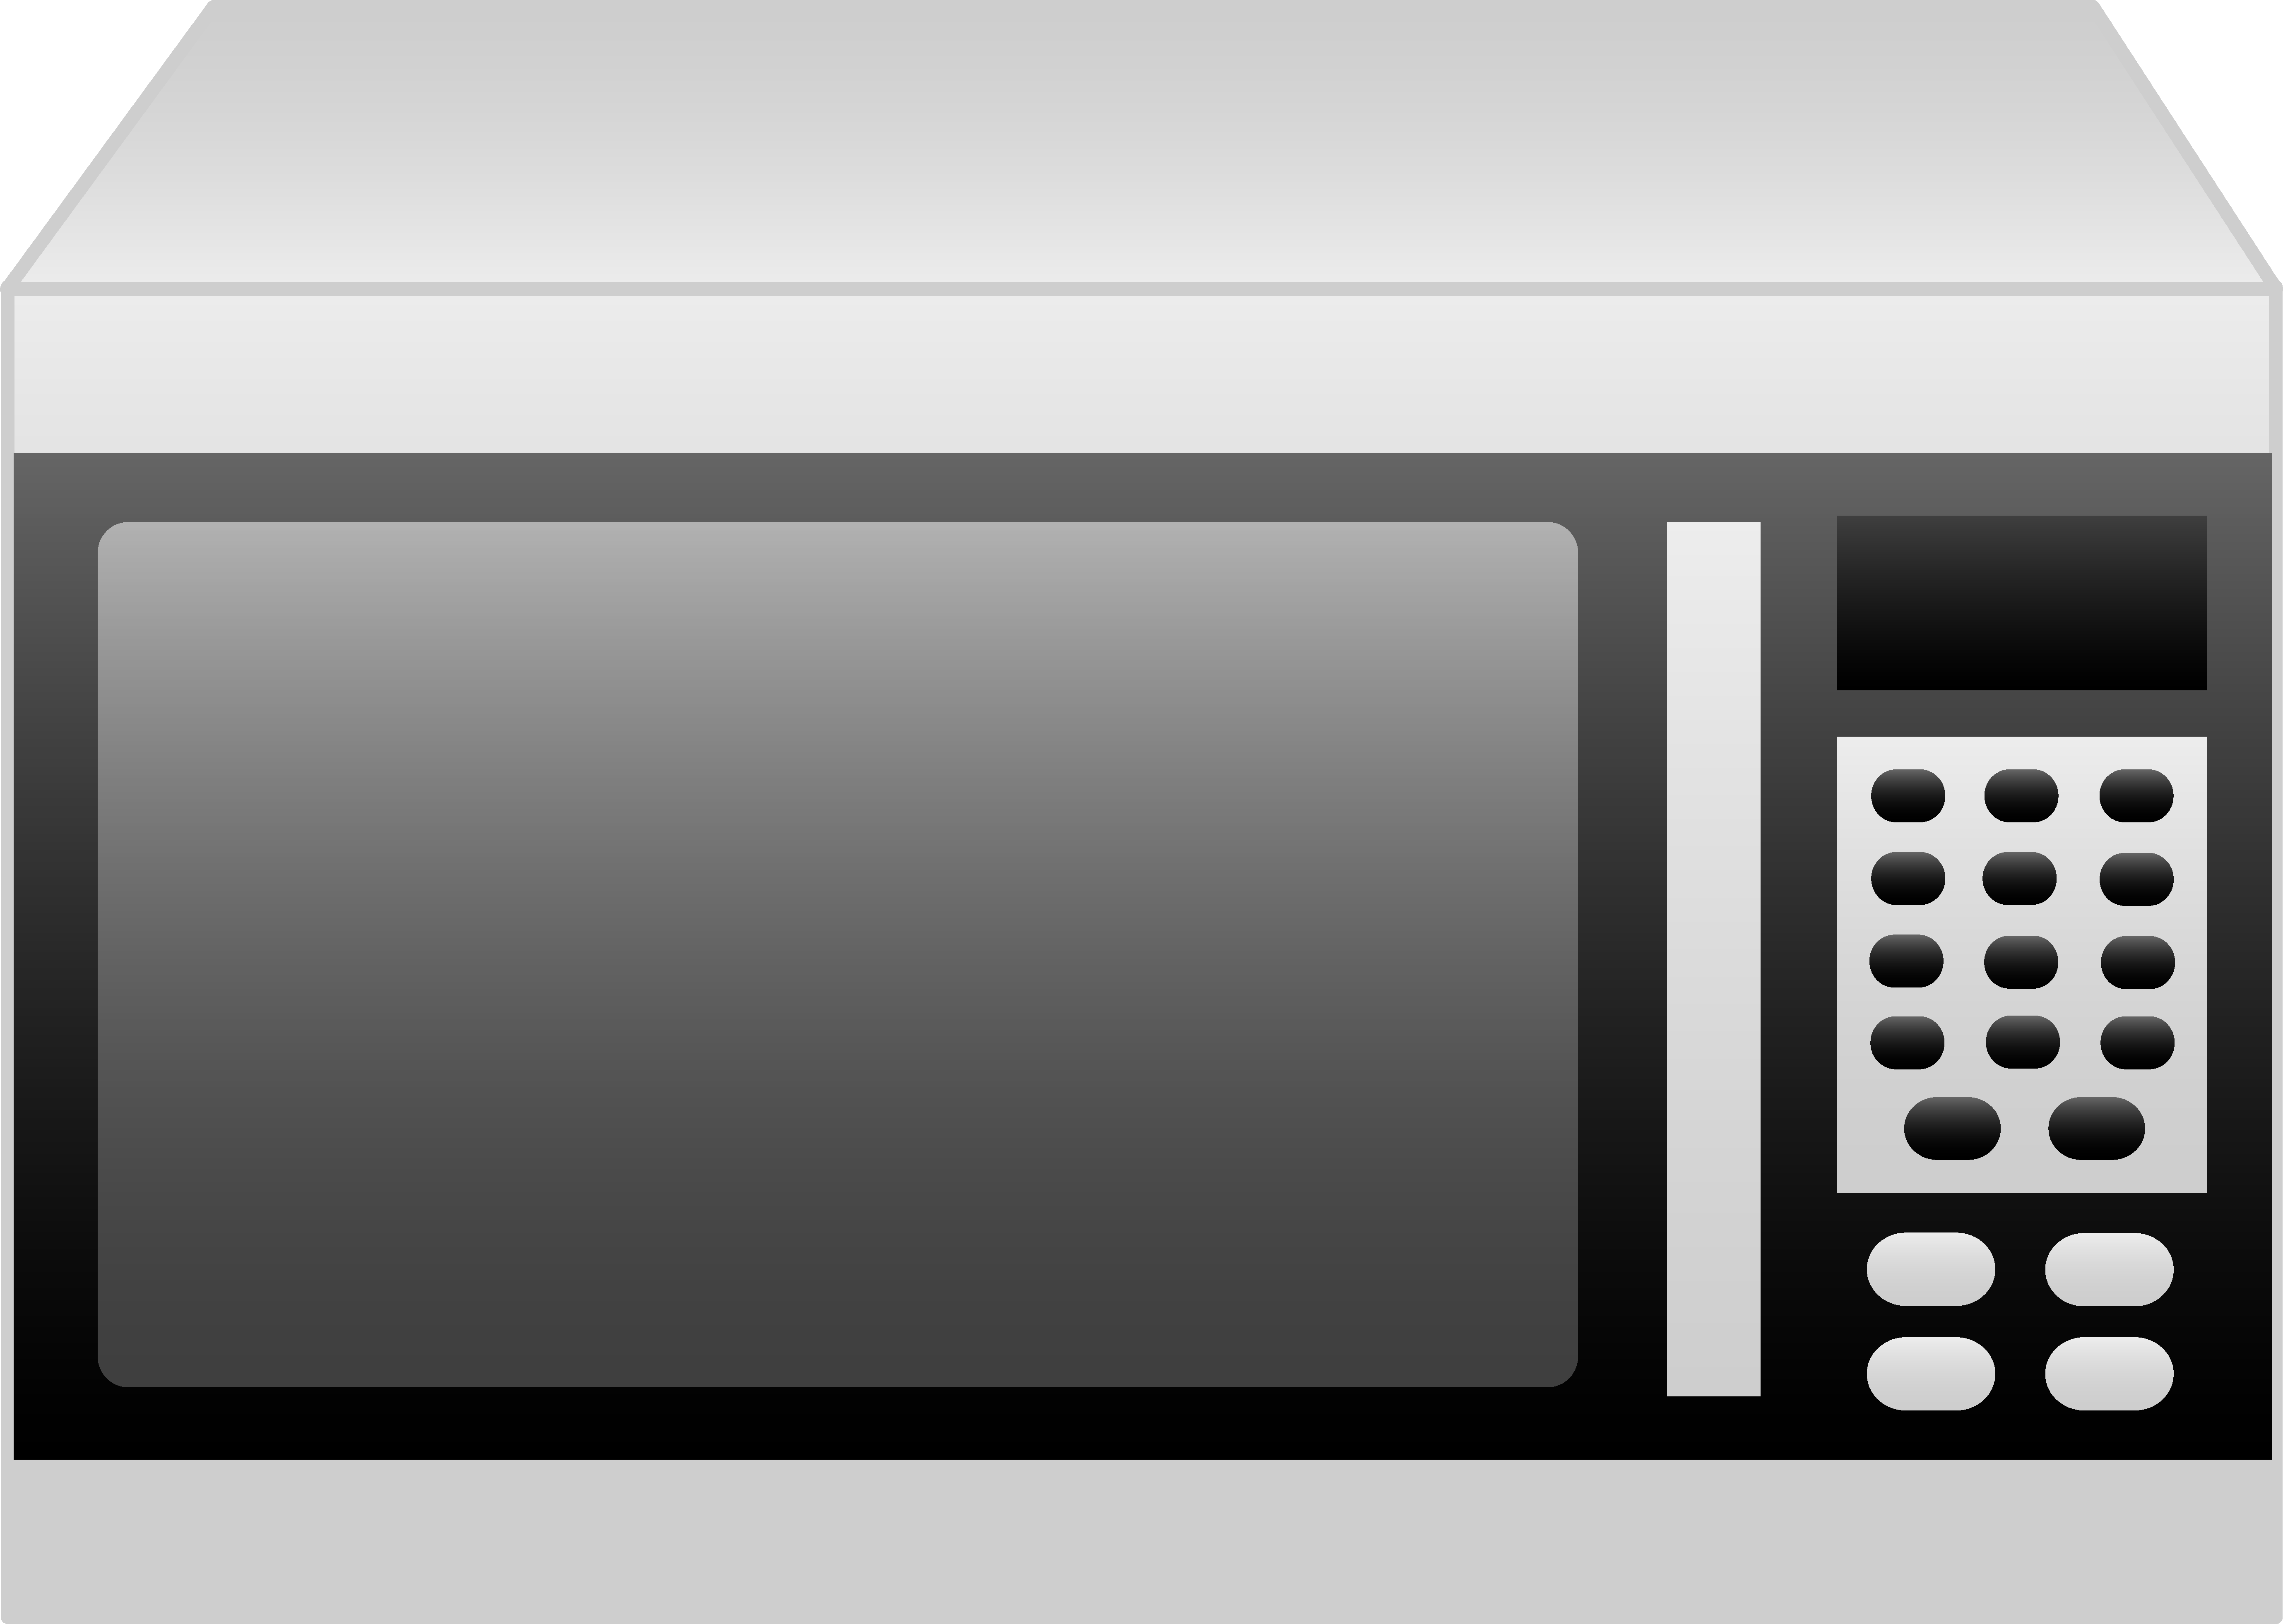 Microwave Oven Design.